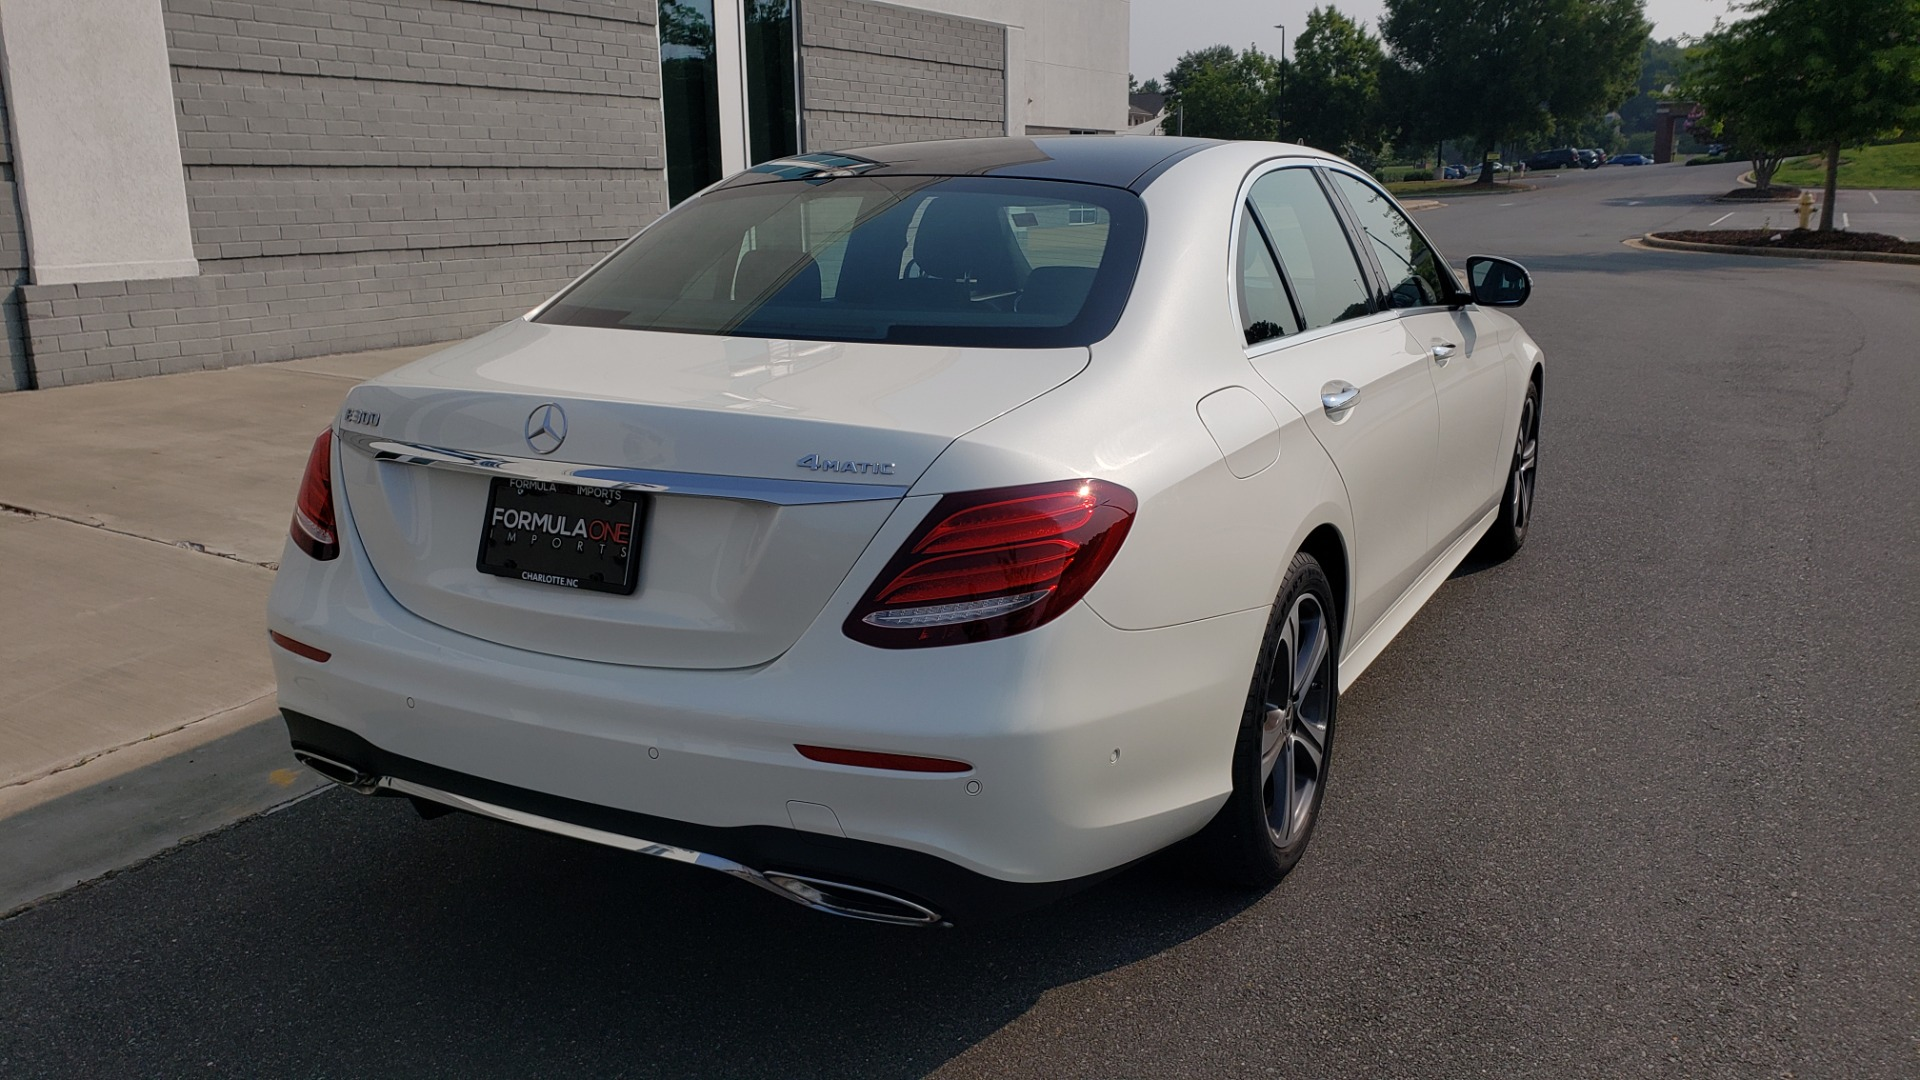 Used 2018 Mercedes-Benz E-CLASS E 300 4MATIC / PREMIUM / NAV / PANO-ROOF / BURMESTER / REARVIEW for sale $41,995 at Formula Imports in Charlotte NC 28227 2